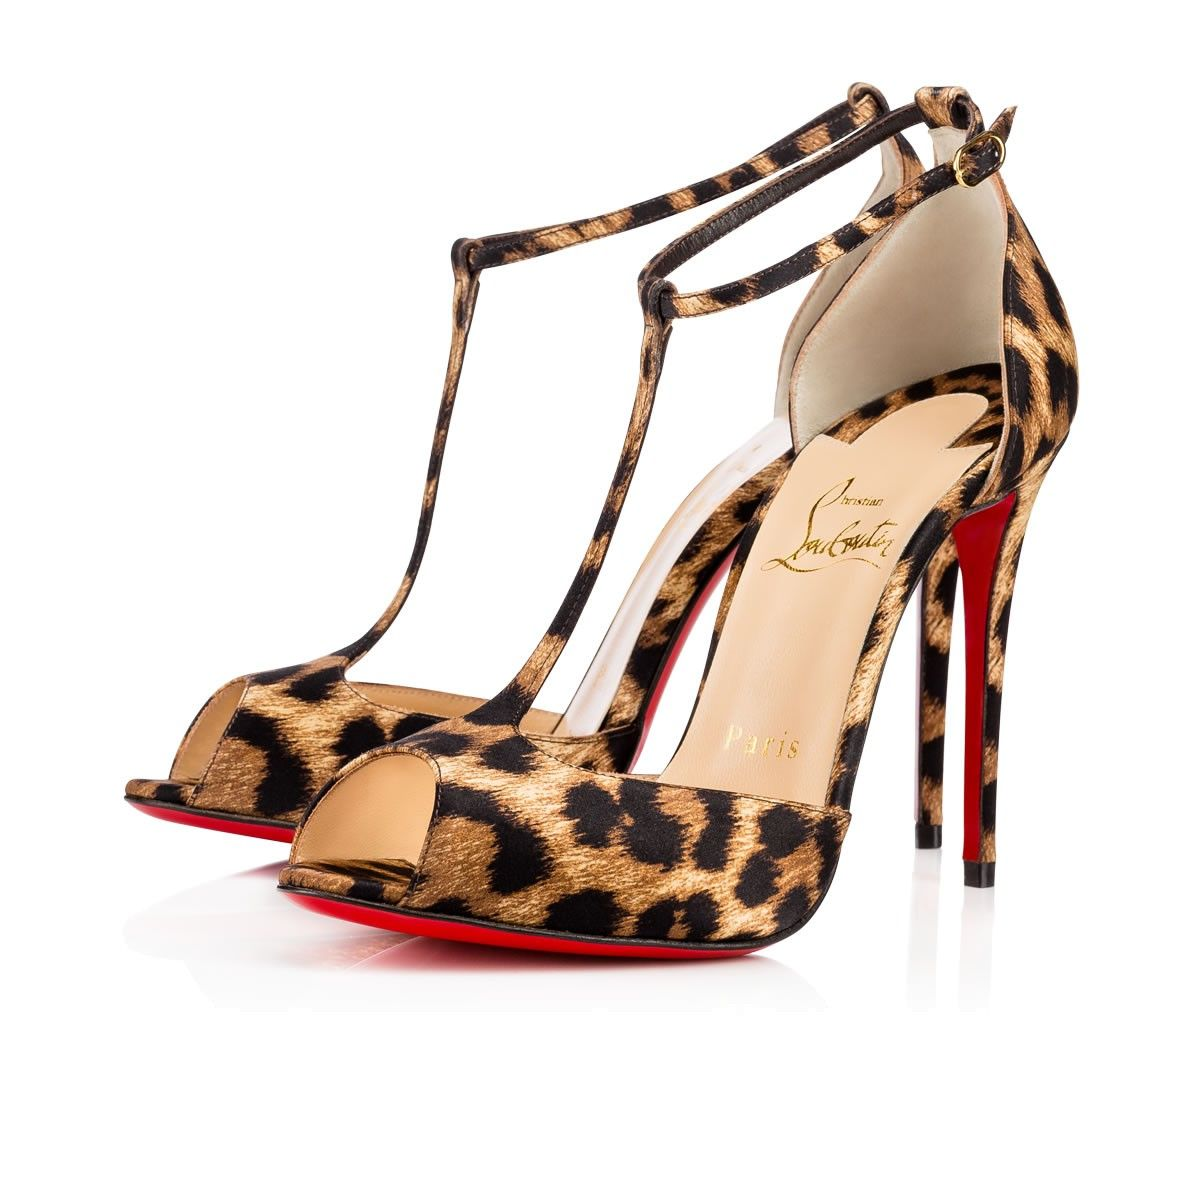 0139d95d67e CHRISTIAN LOUBOUTIN Senora 100 Brown Leopard Satin - Women Shoes ...